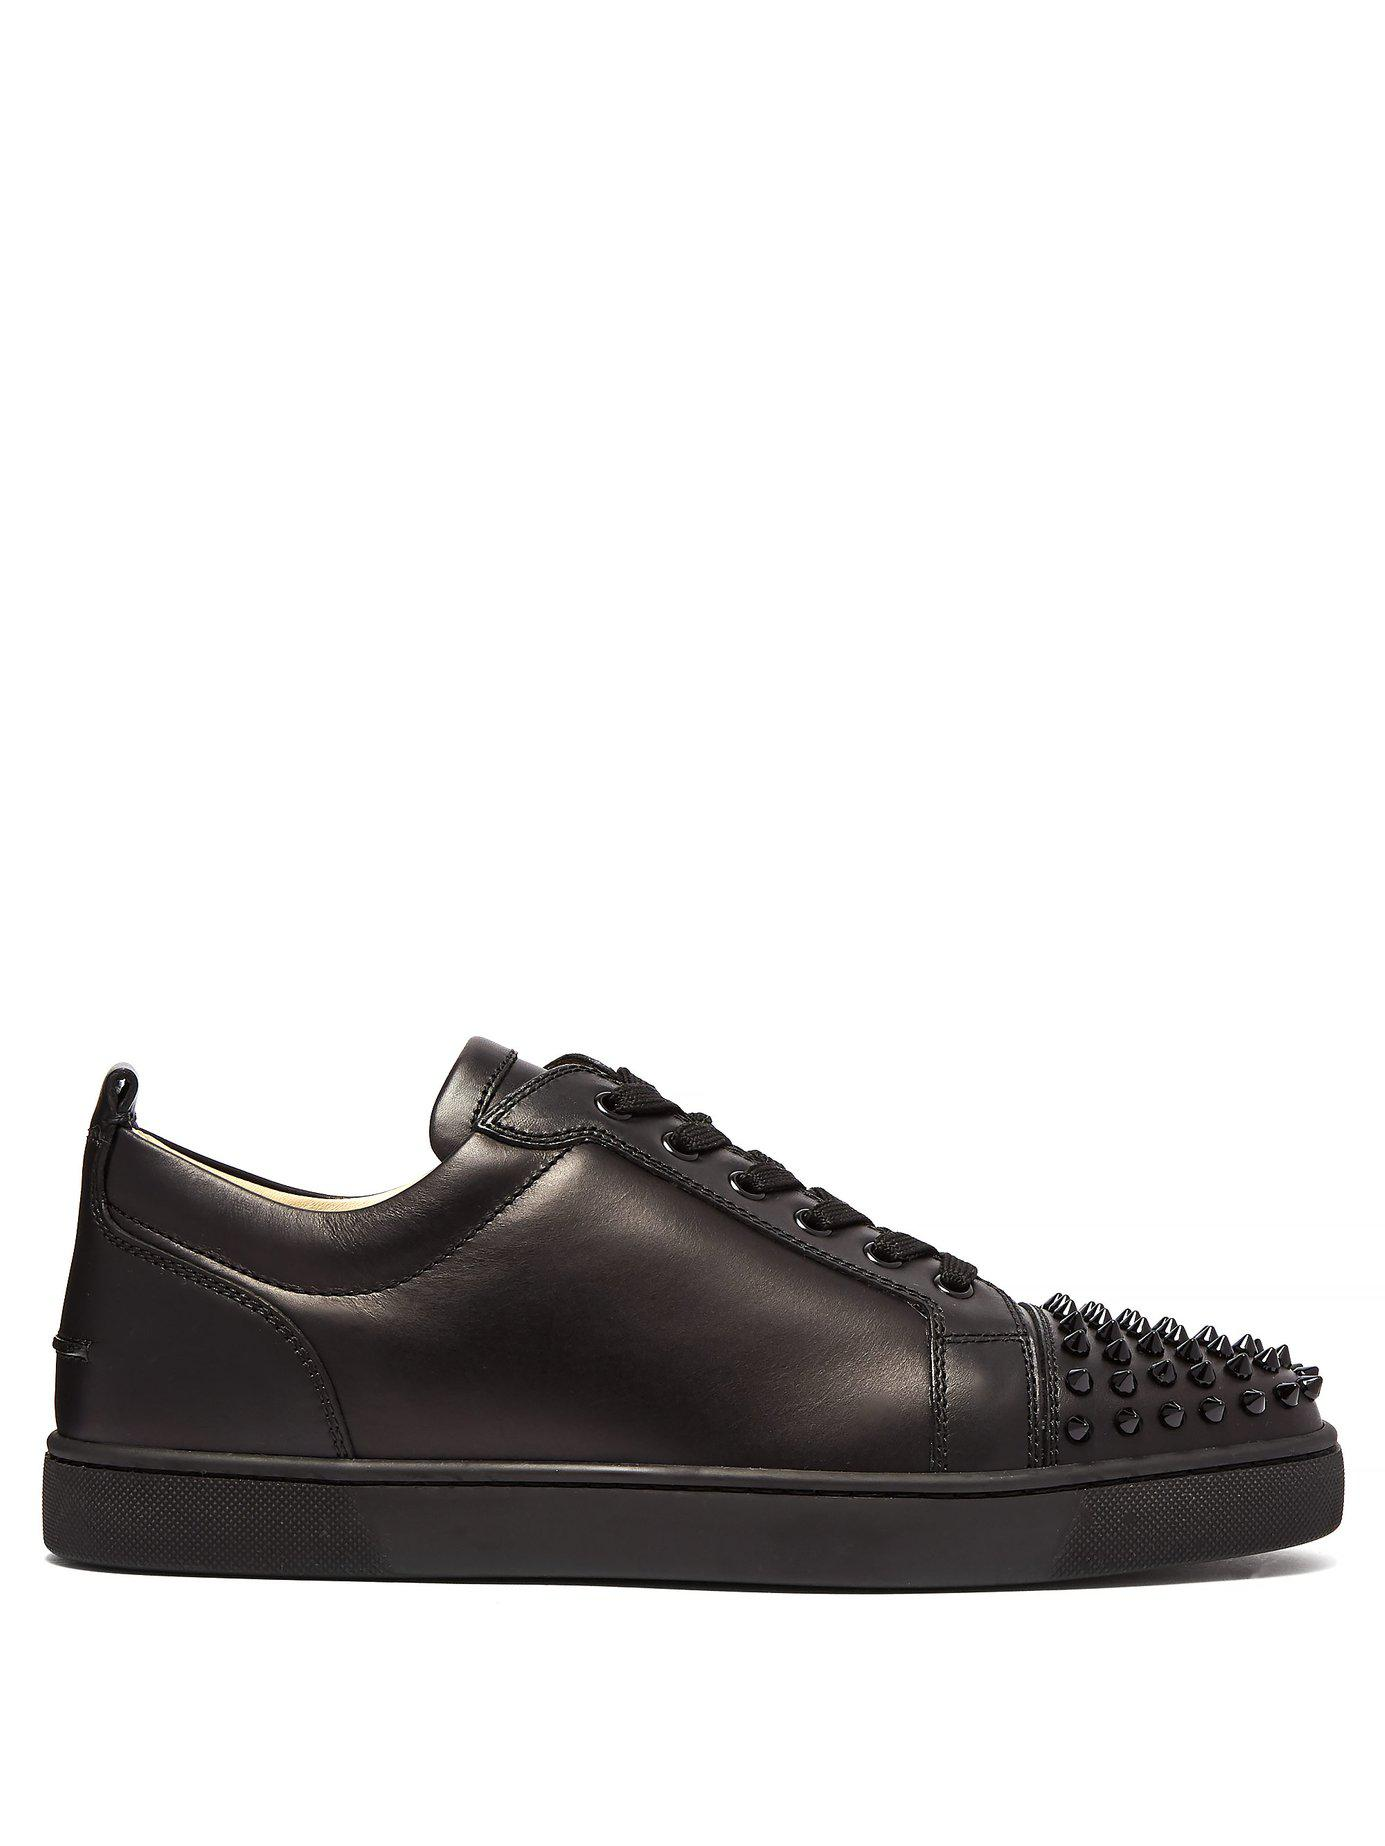 ebbf8280752 Lyst - Christian Louboutin Louis Junior Low Top Leather Trainers in ...